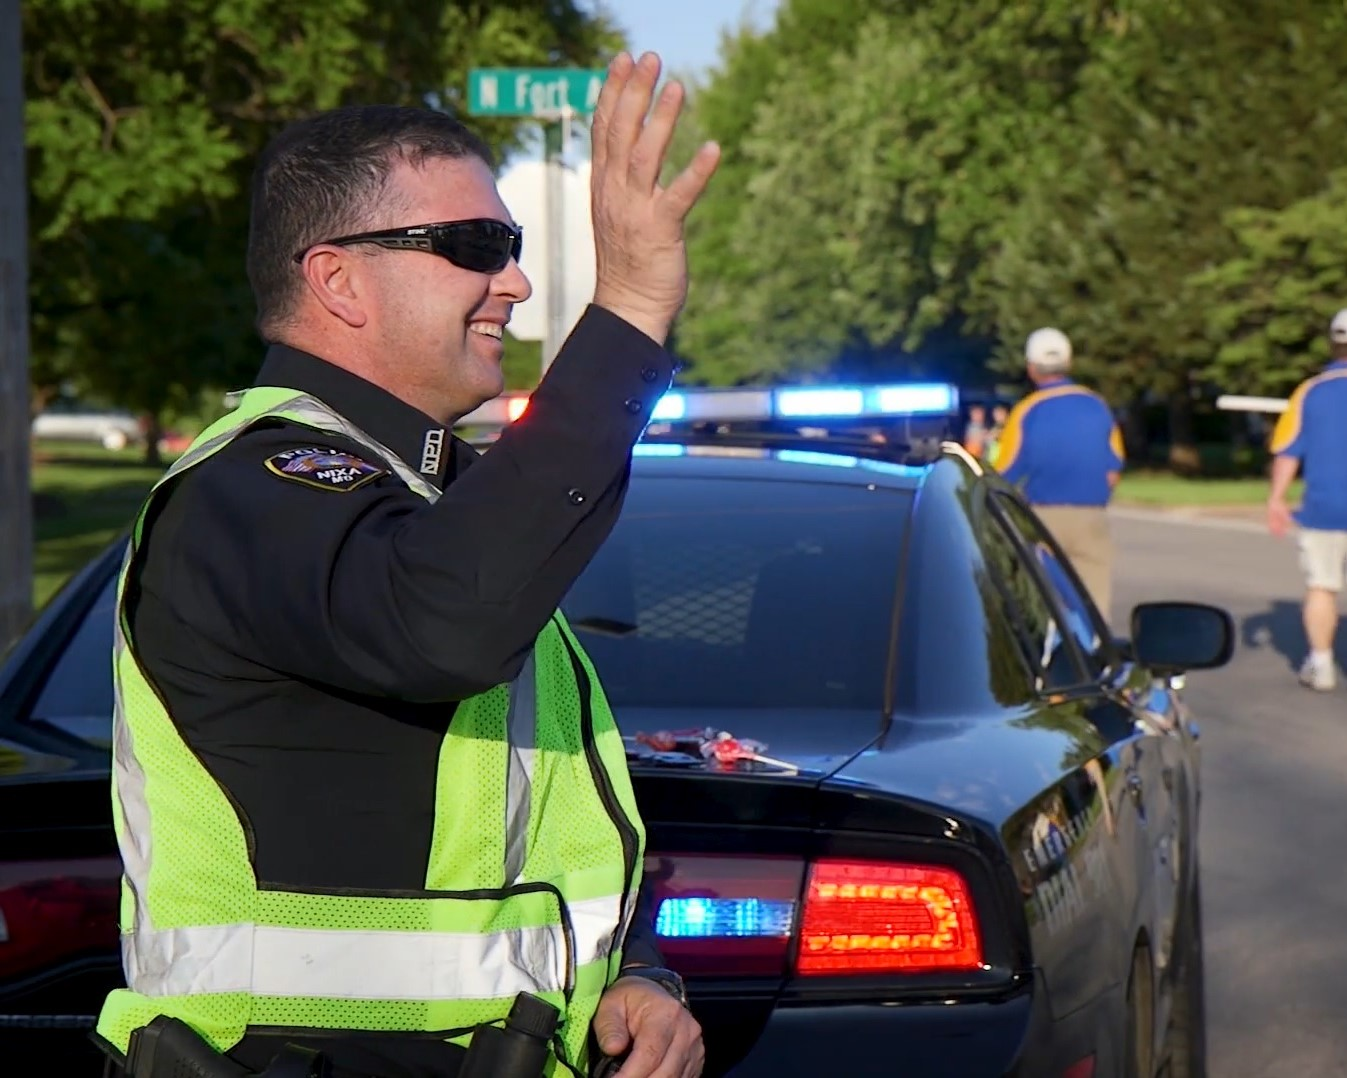 OFFICER WAVING DURING PARADE DETAIL